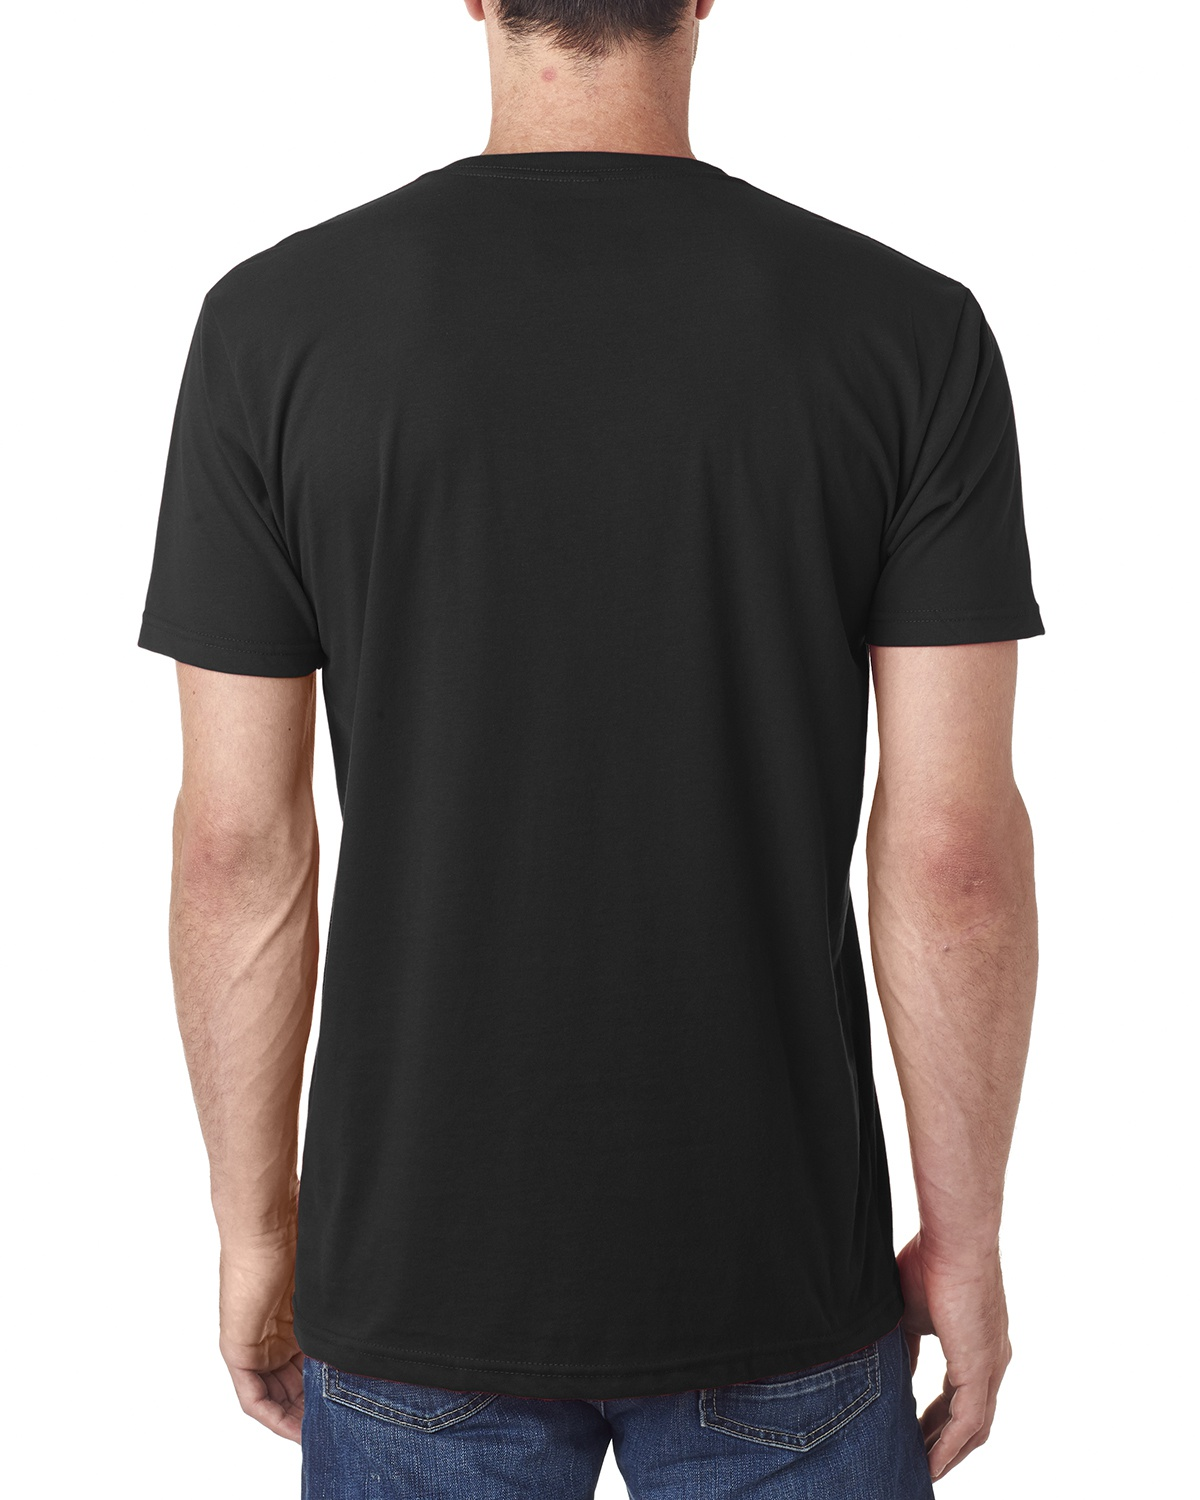 e3736fd9fa12 Buy Next Level 6440 V-Neck | Premium Fitted Sueded T-Shirt ...